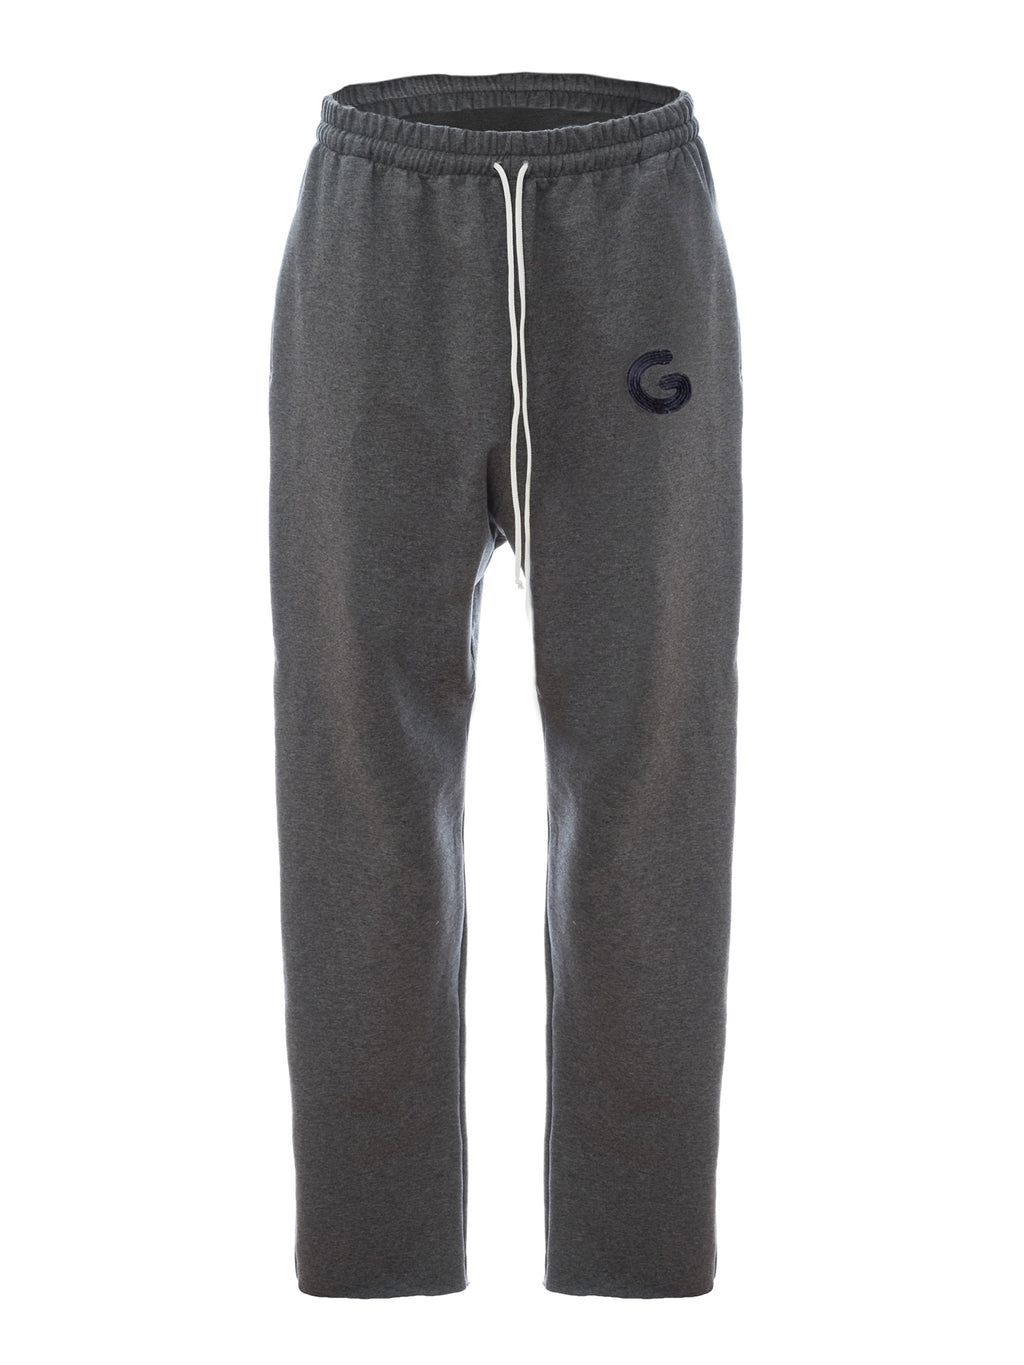 TheG Essential Joggers // moon